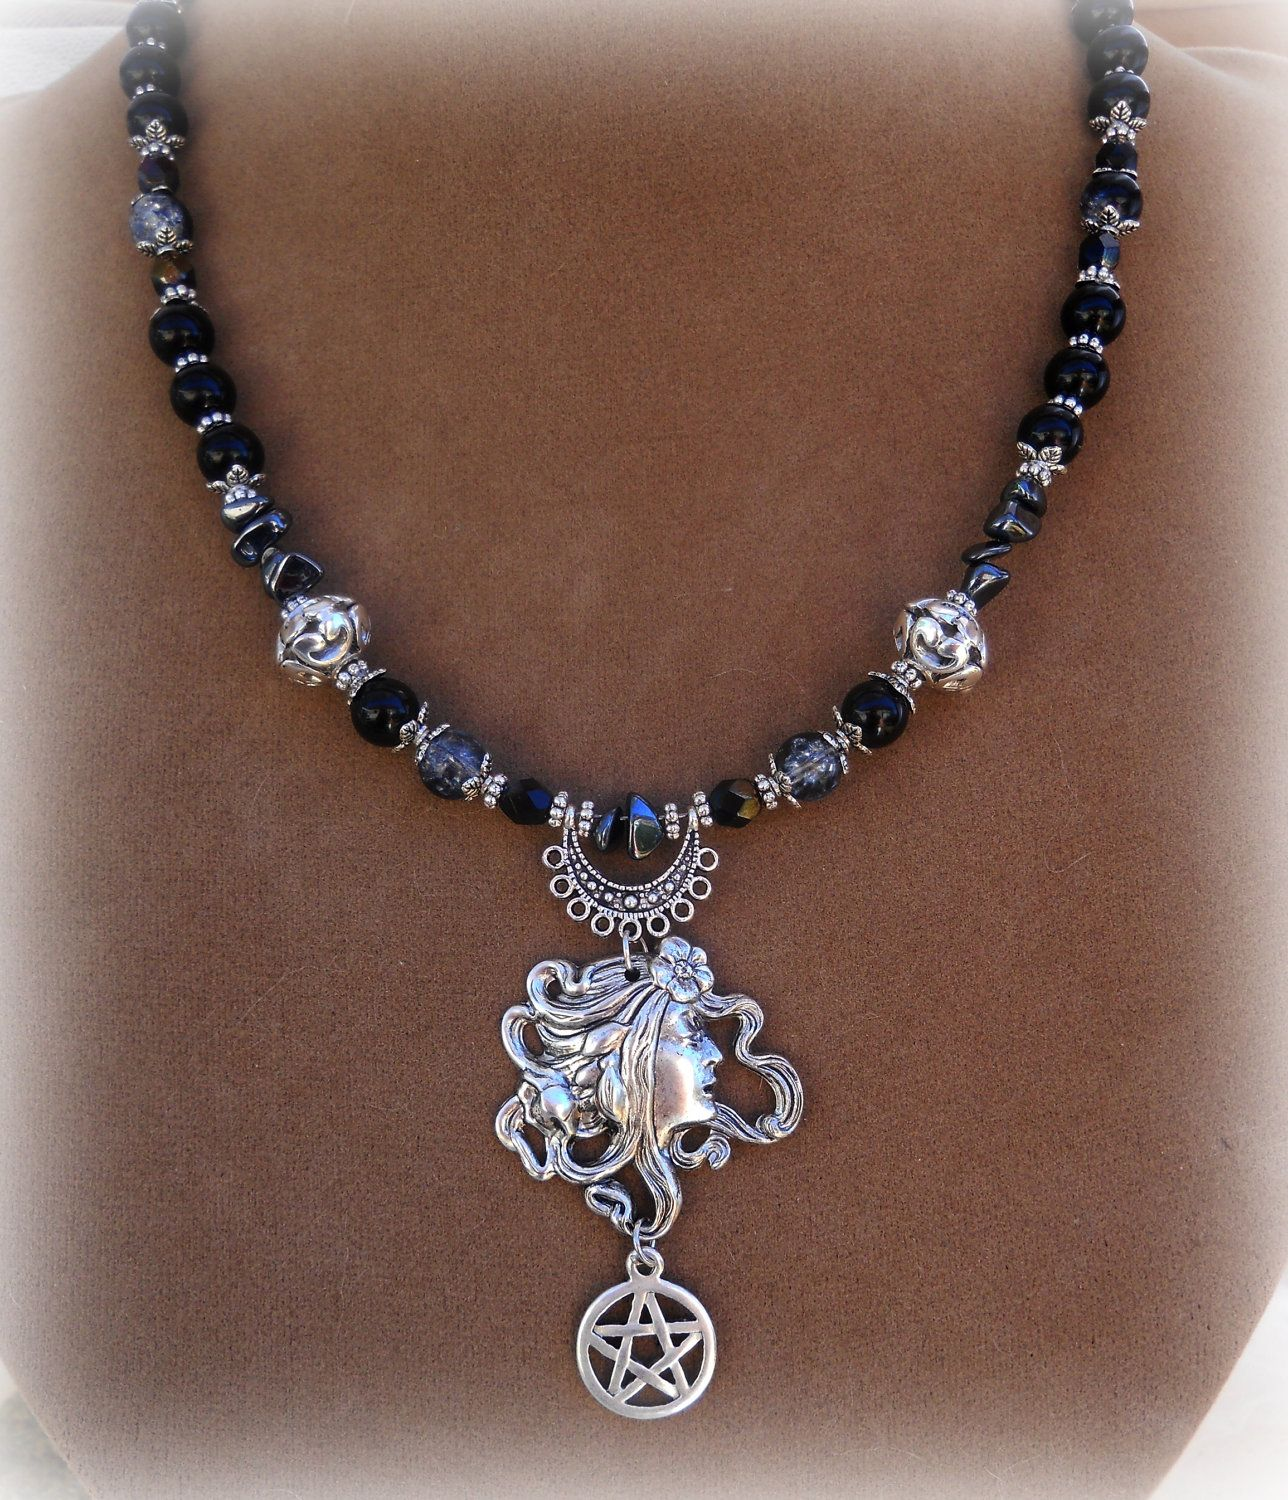 necklace pendant galreadia hecate